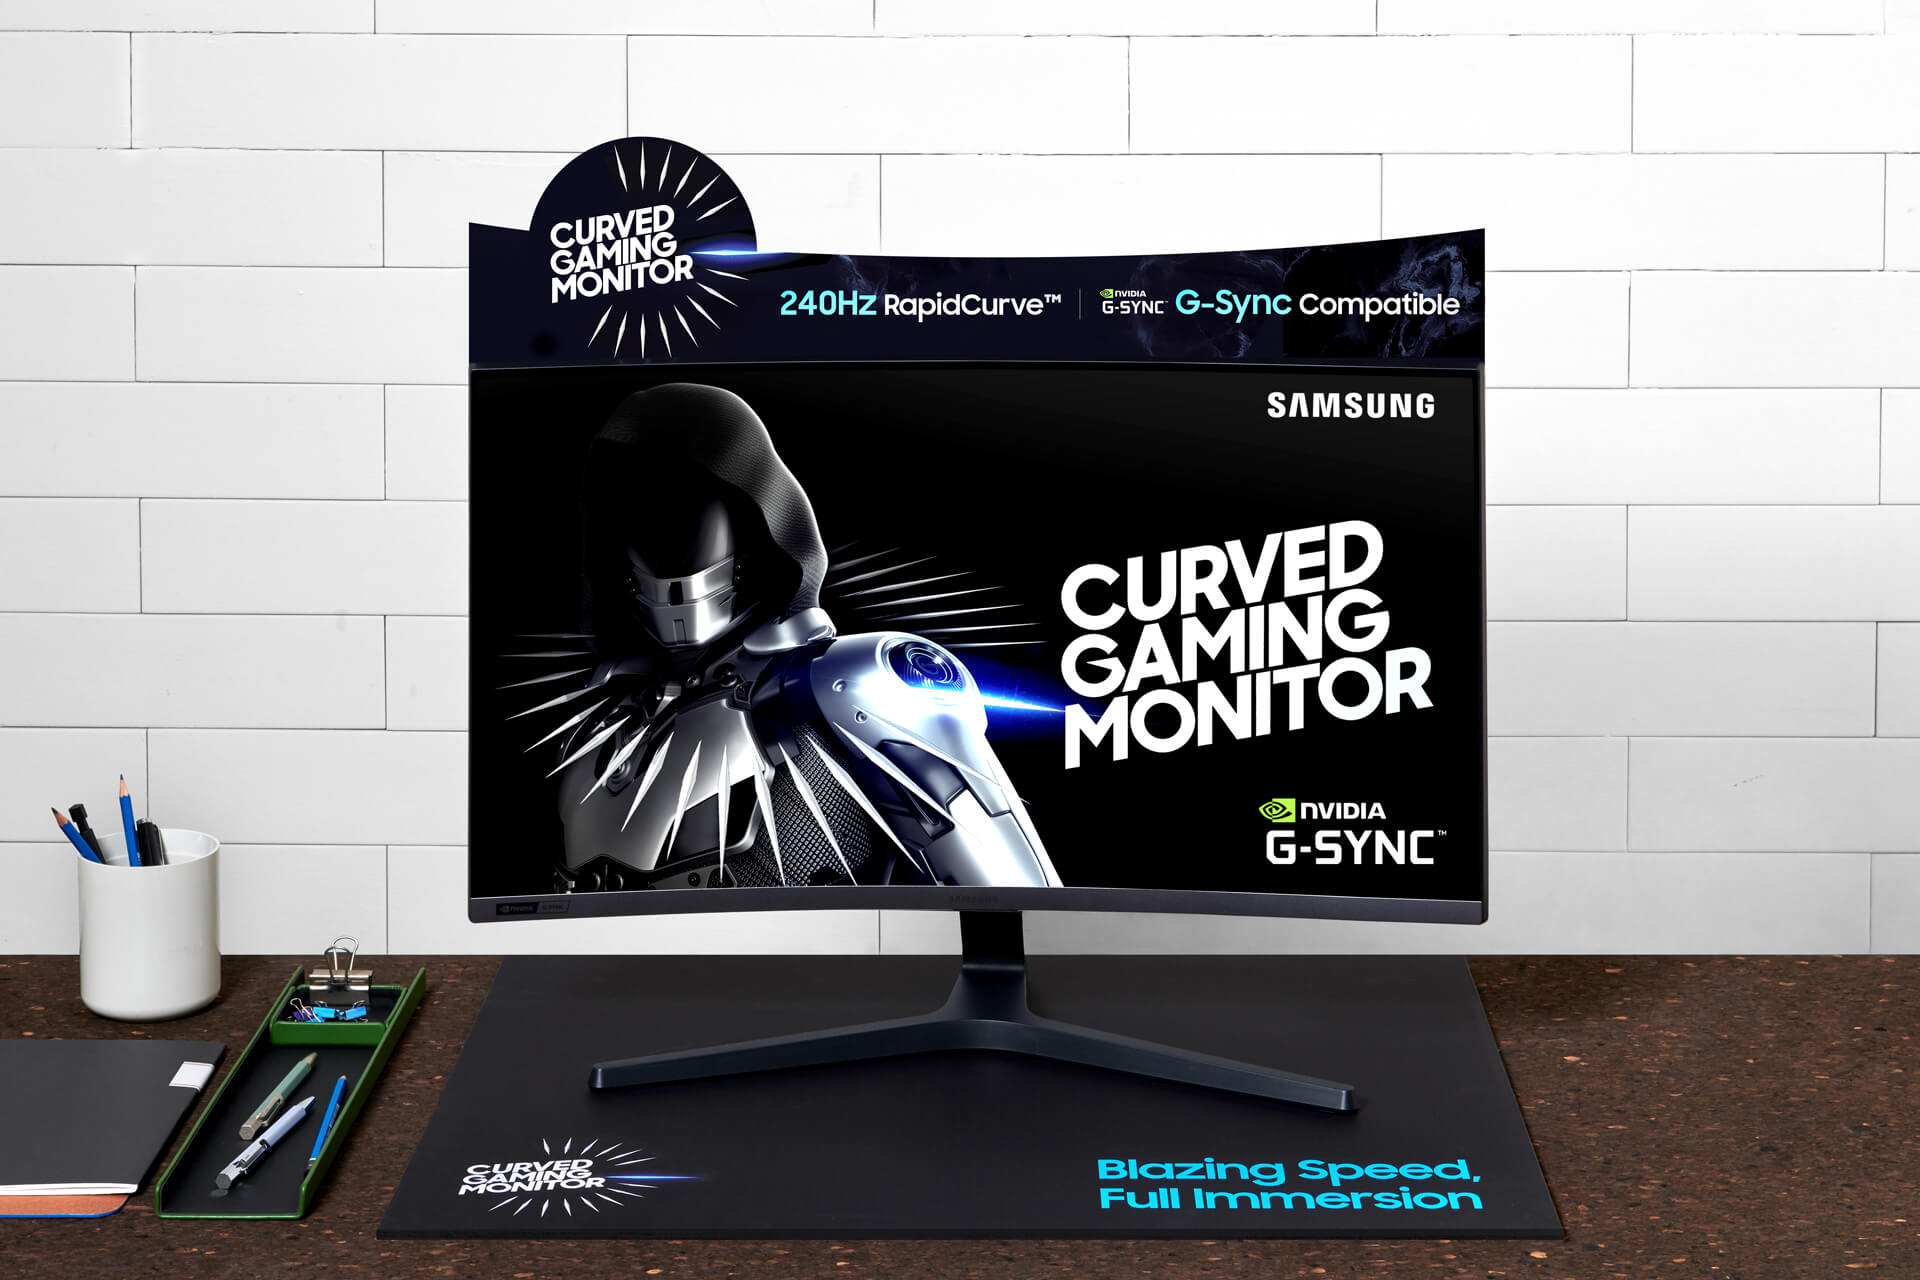 samsung crg5, Samsung Launches the CRG5, a 27-inch 240Hz Curved Gaming Monitor with G-Sync!, Gadget Pilipinas